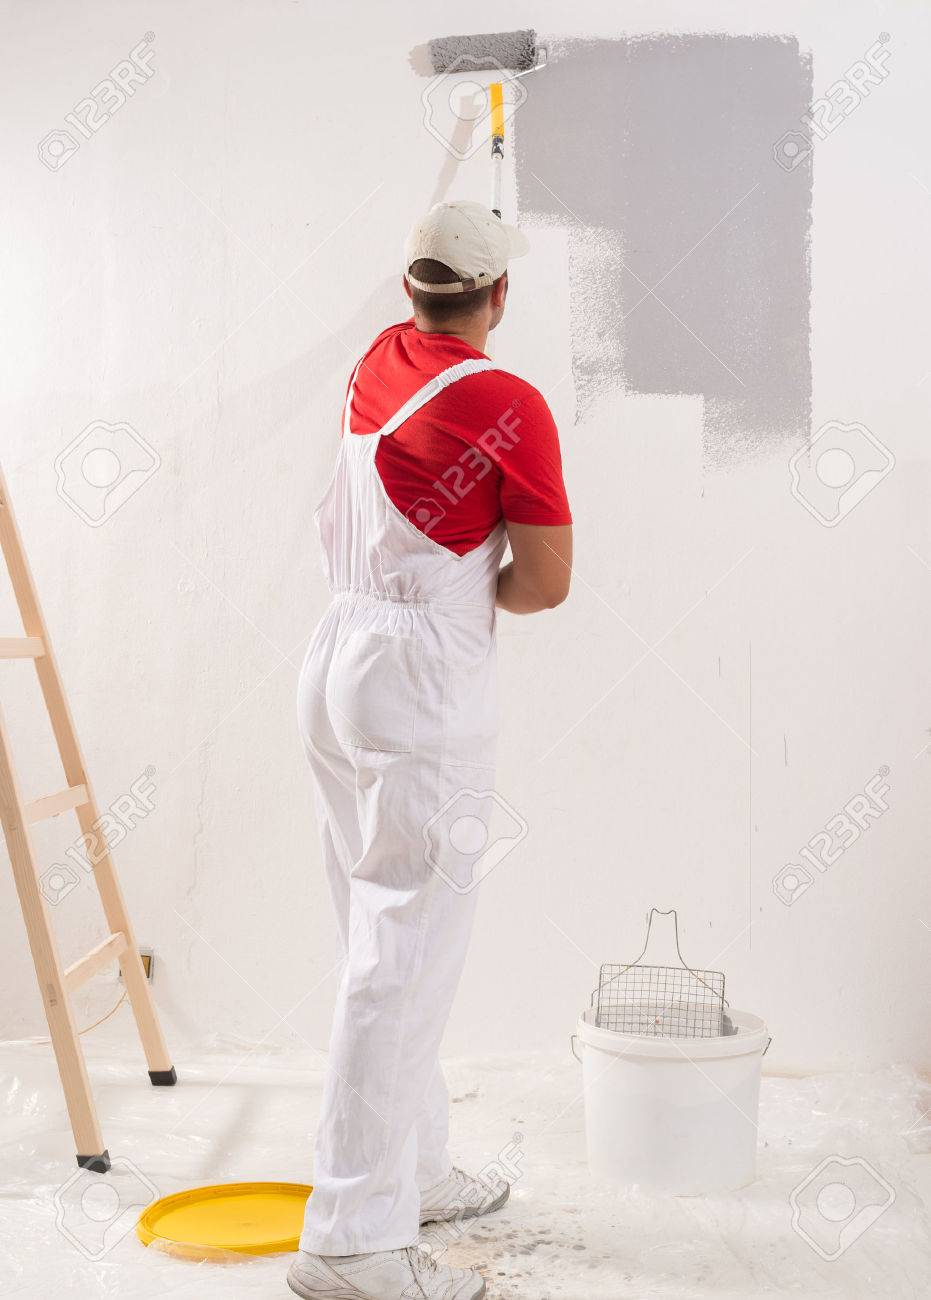 Young Man On Painting Wall With Roller - 44220102